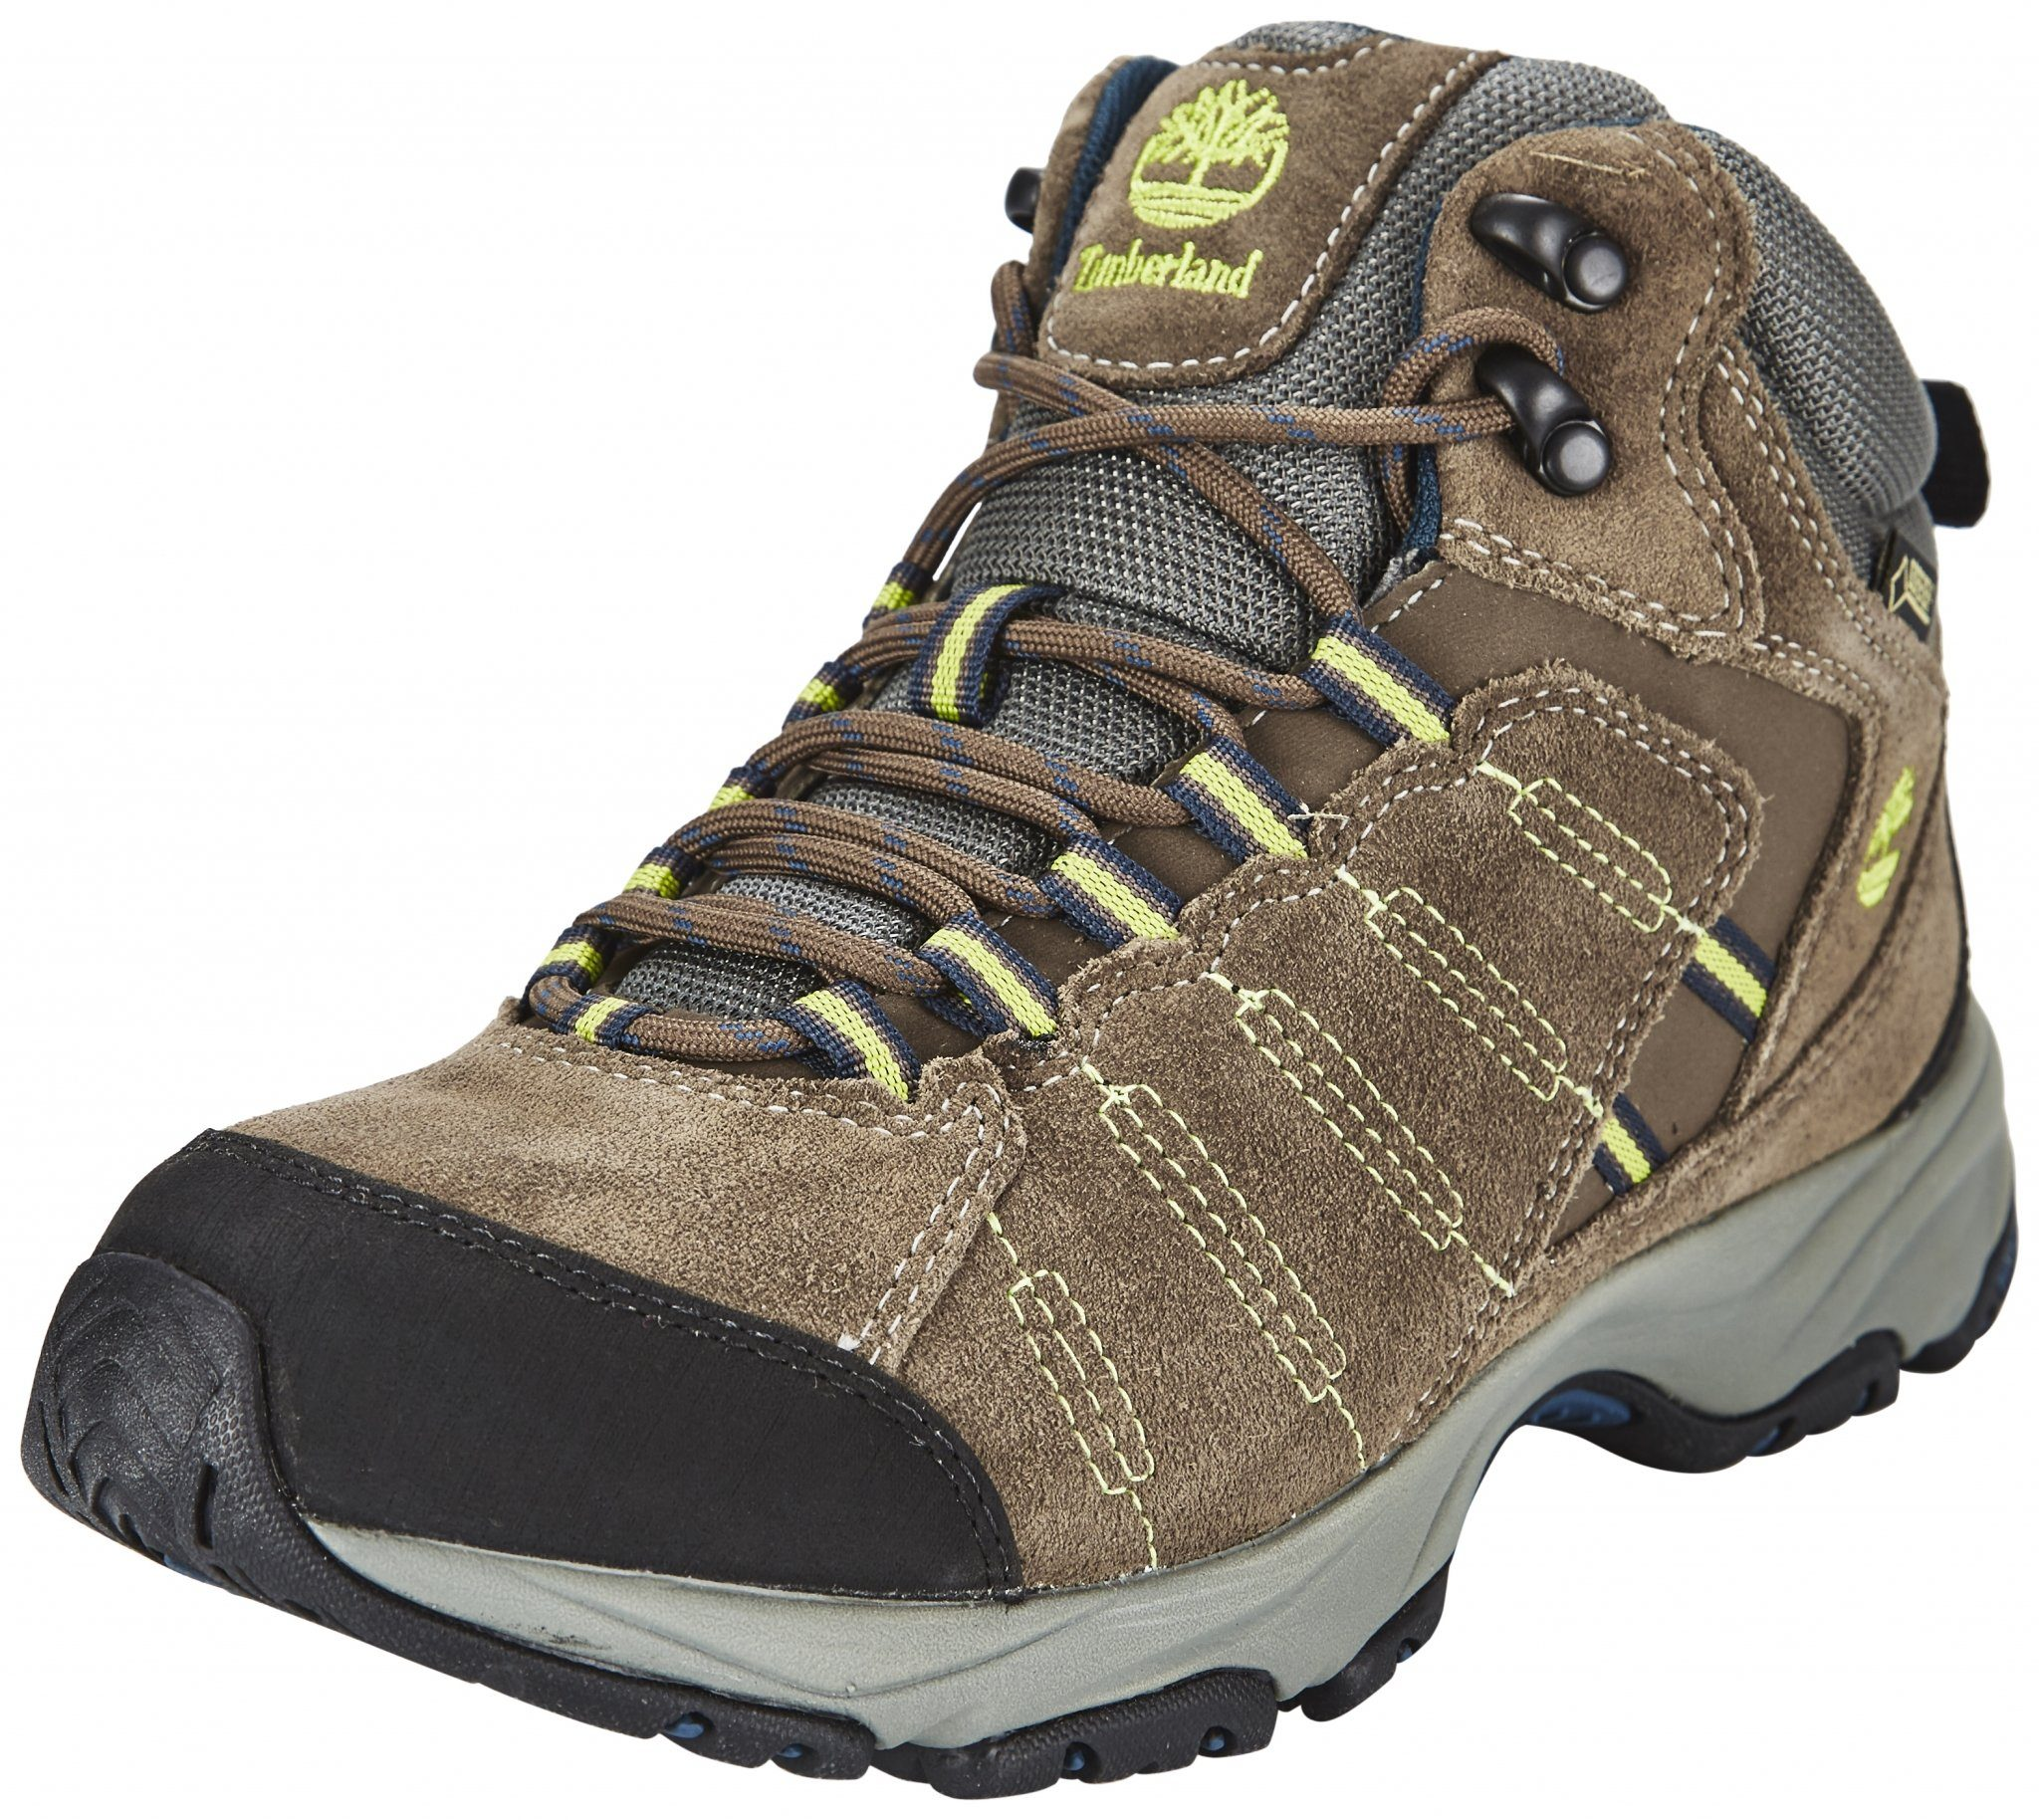 TIMBERLAND Kletterschuh »Tilton Shoes Ladies Mid GTX«